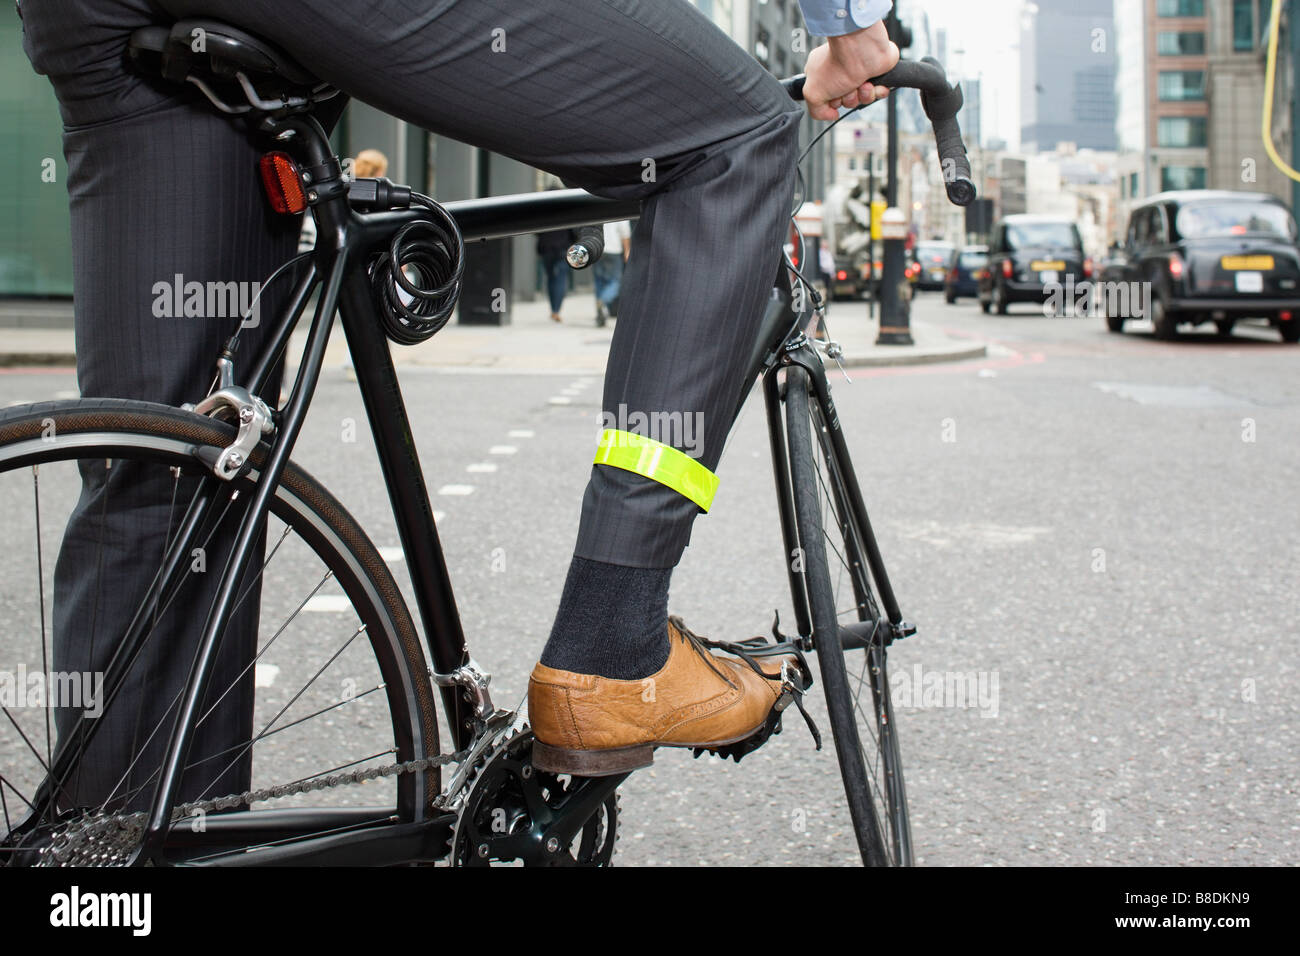 Man riding bicycle - Stock Image